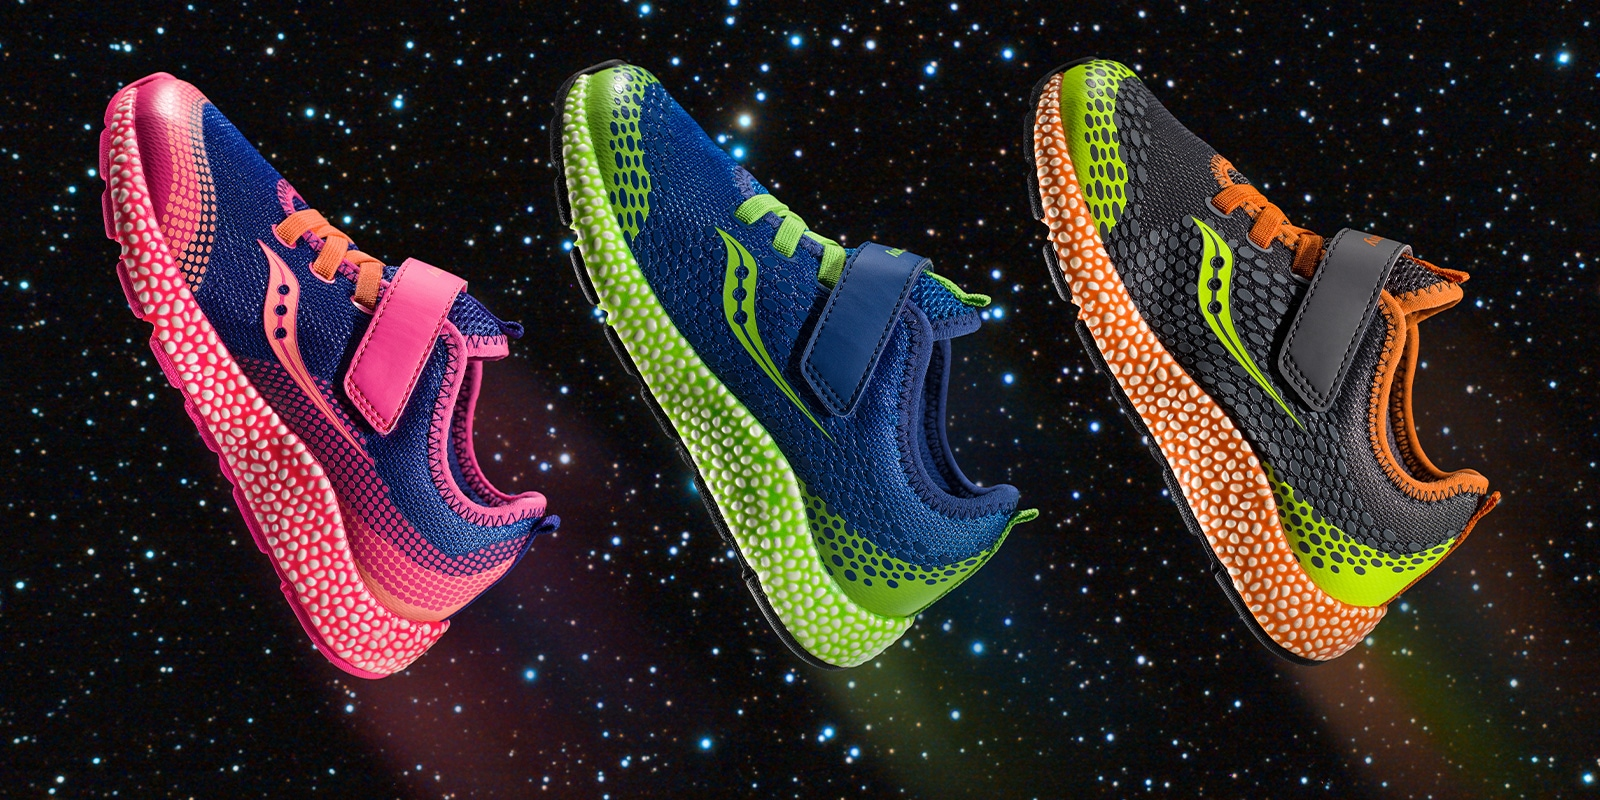 3 Saucony kids Astofoam shoes in outer space!